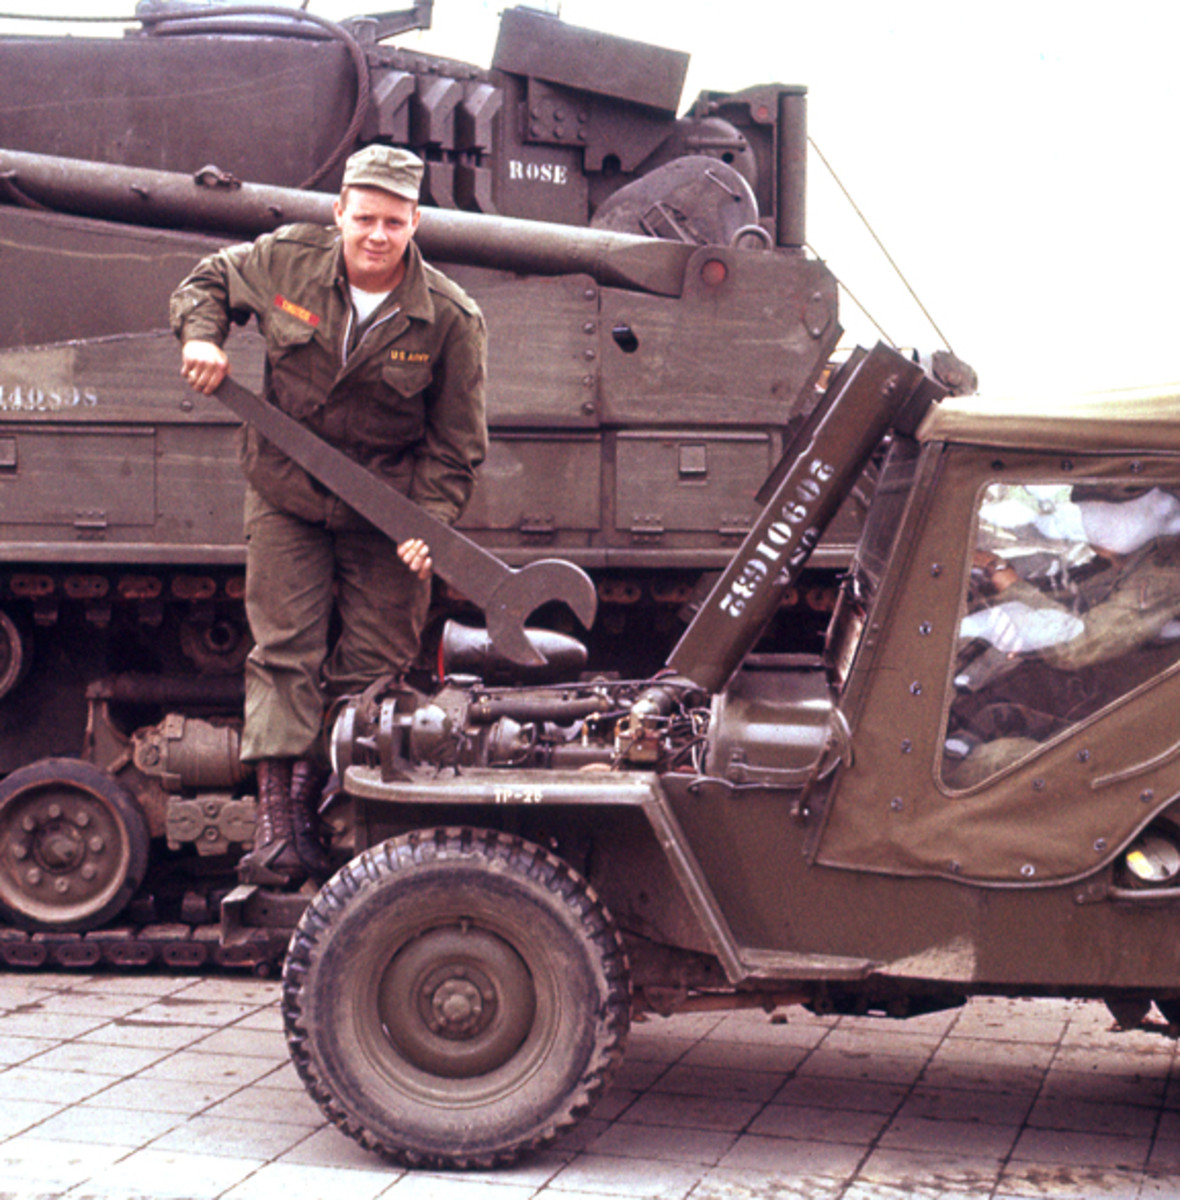 Ca. 1955 photo of Verne Kindschi standing over M38 jeep with a tank wrench